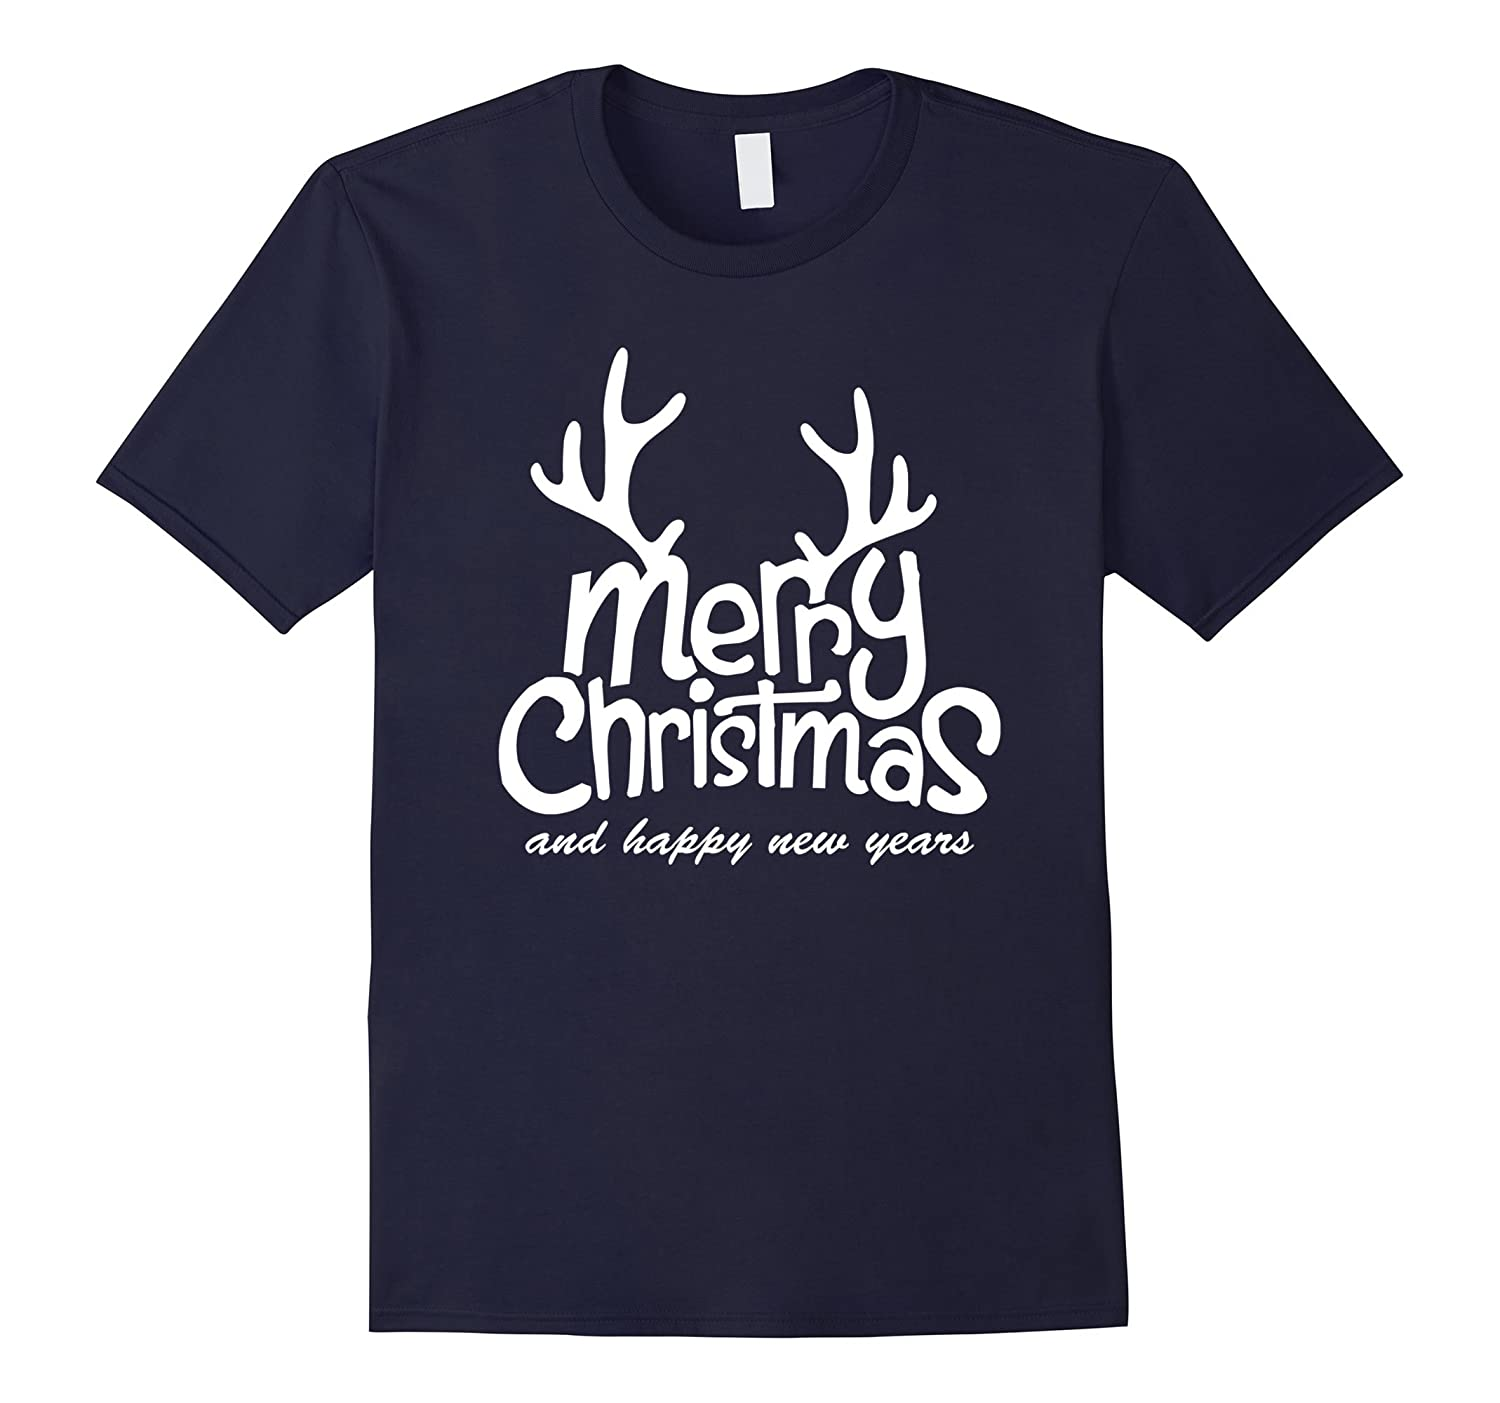 Merry Christmas And Happy New Year, Men Women Gift T-Shirt-CL